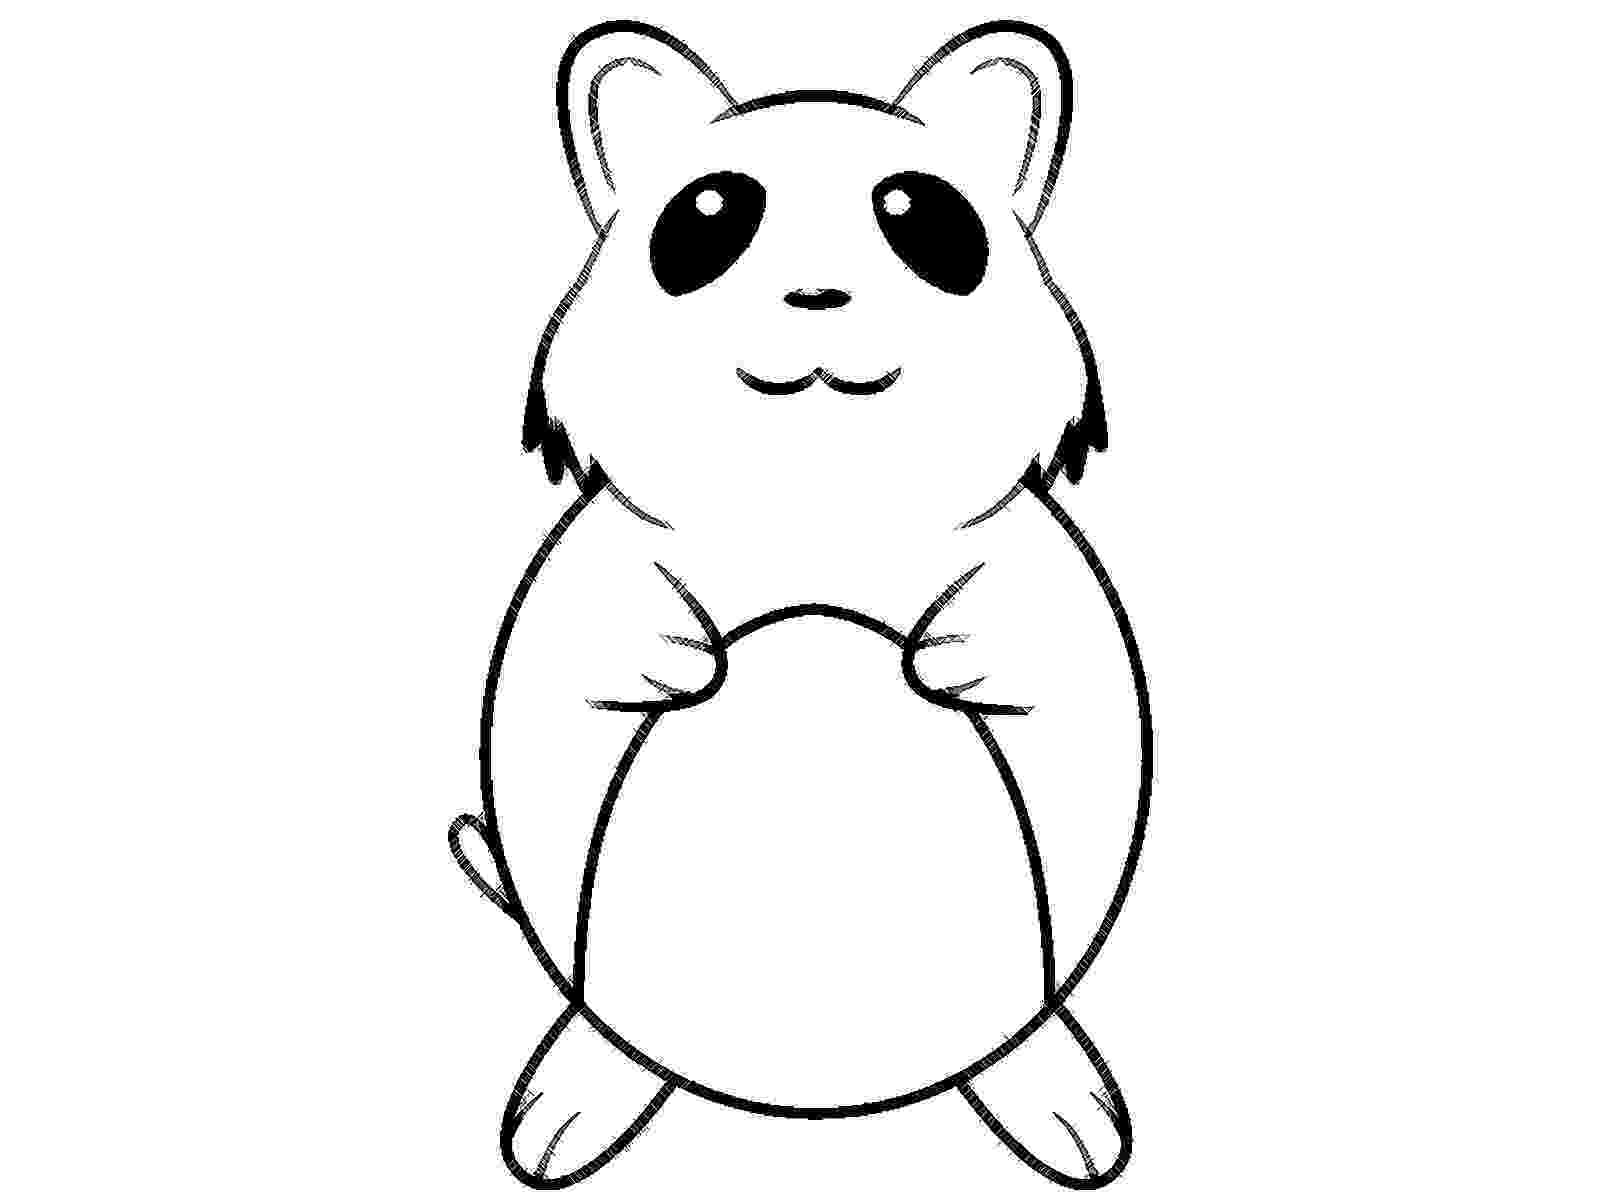 hamster coloring pages to print hamster coloring pages kidsuki to coloring print pages hamster